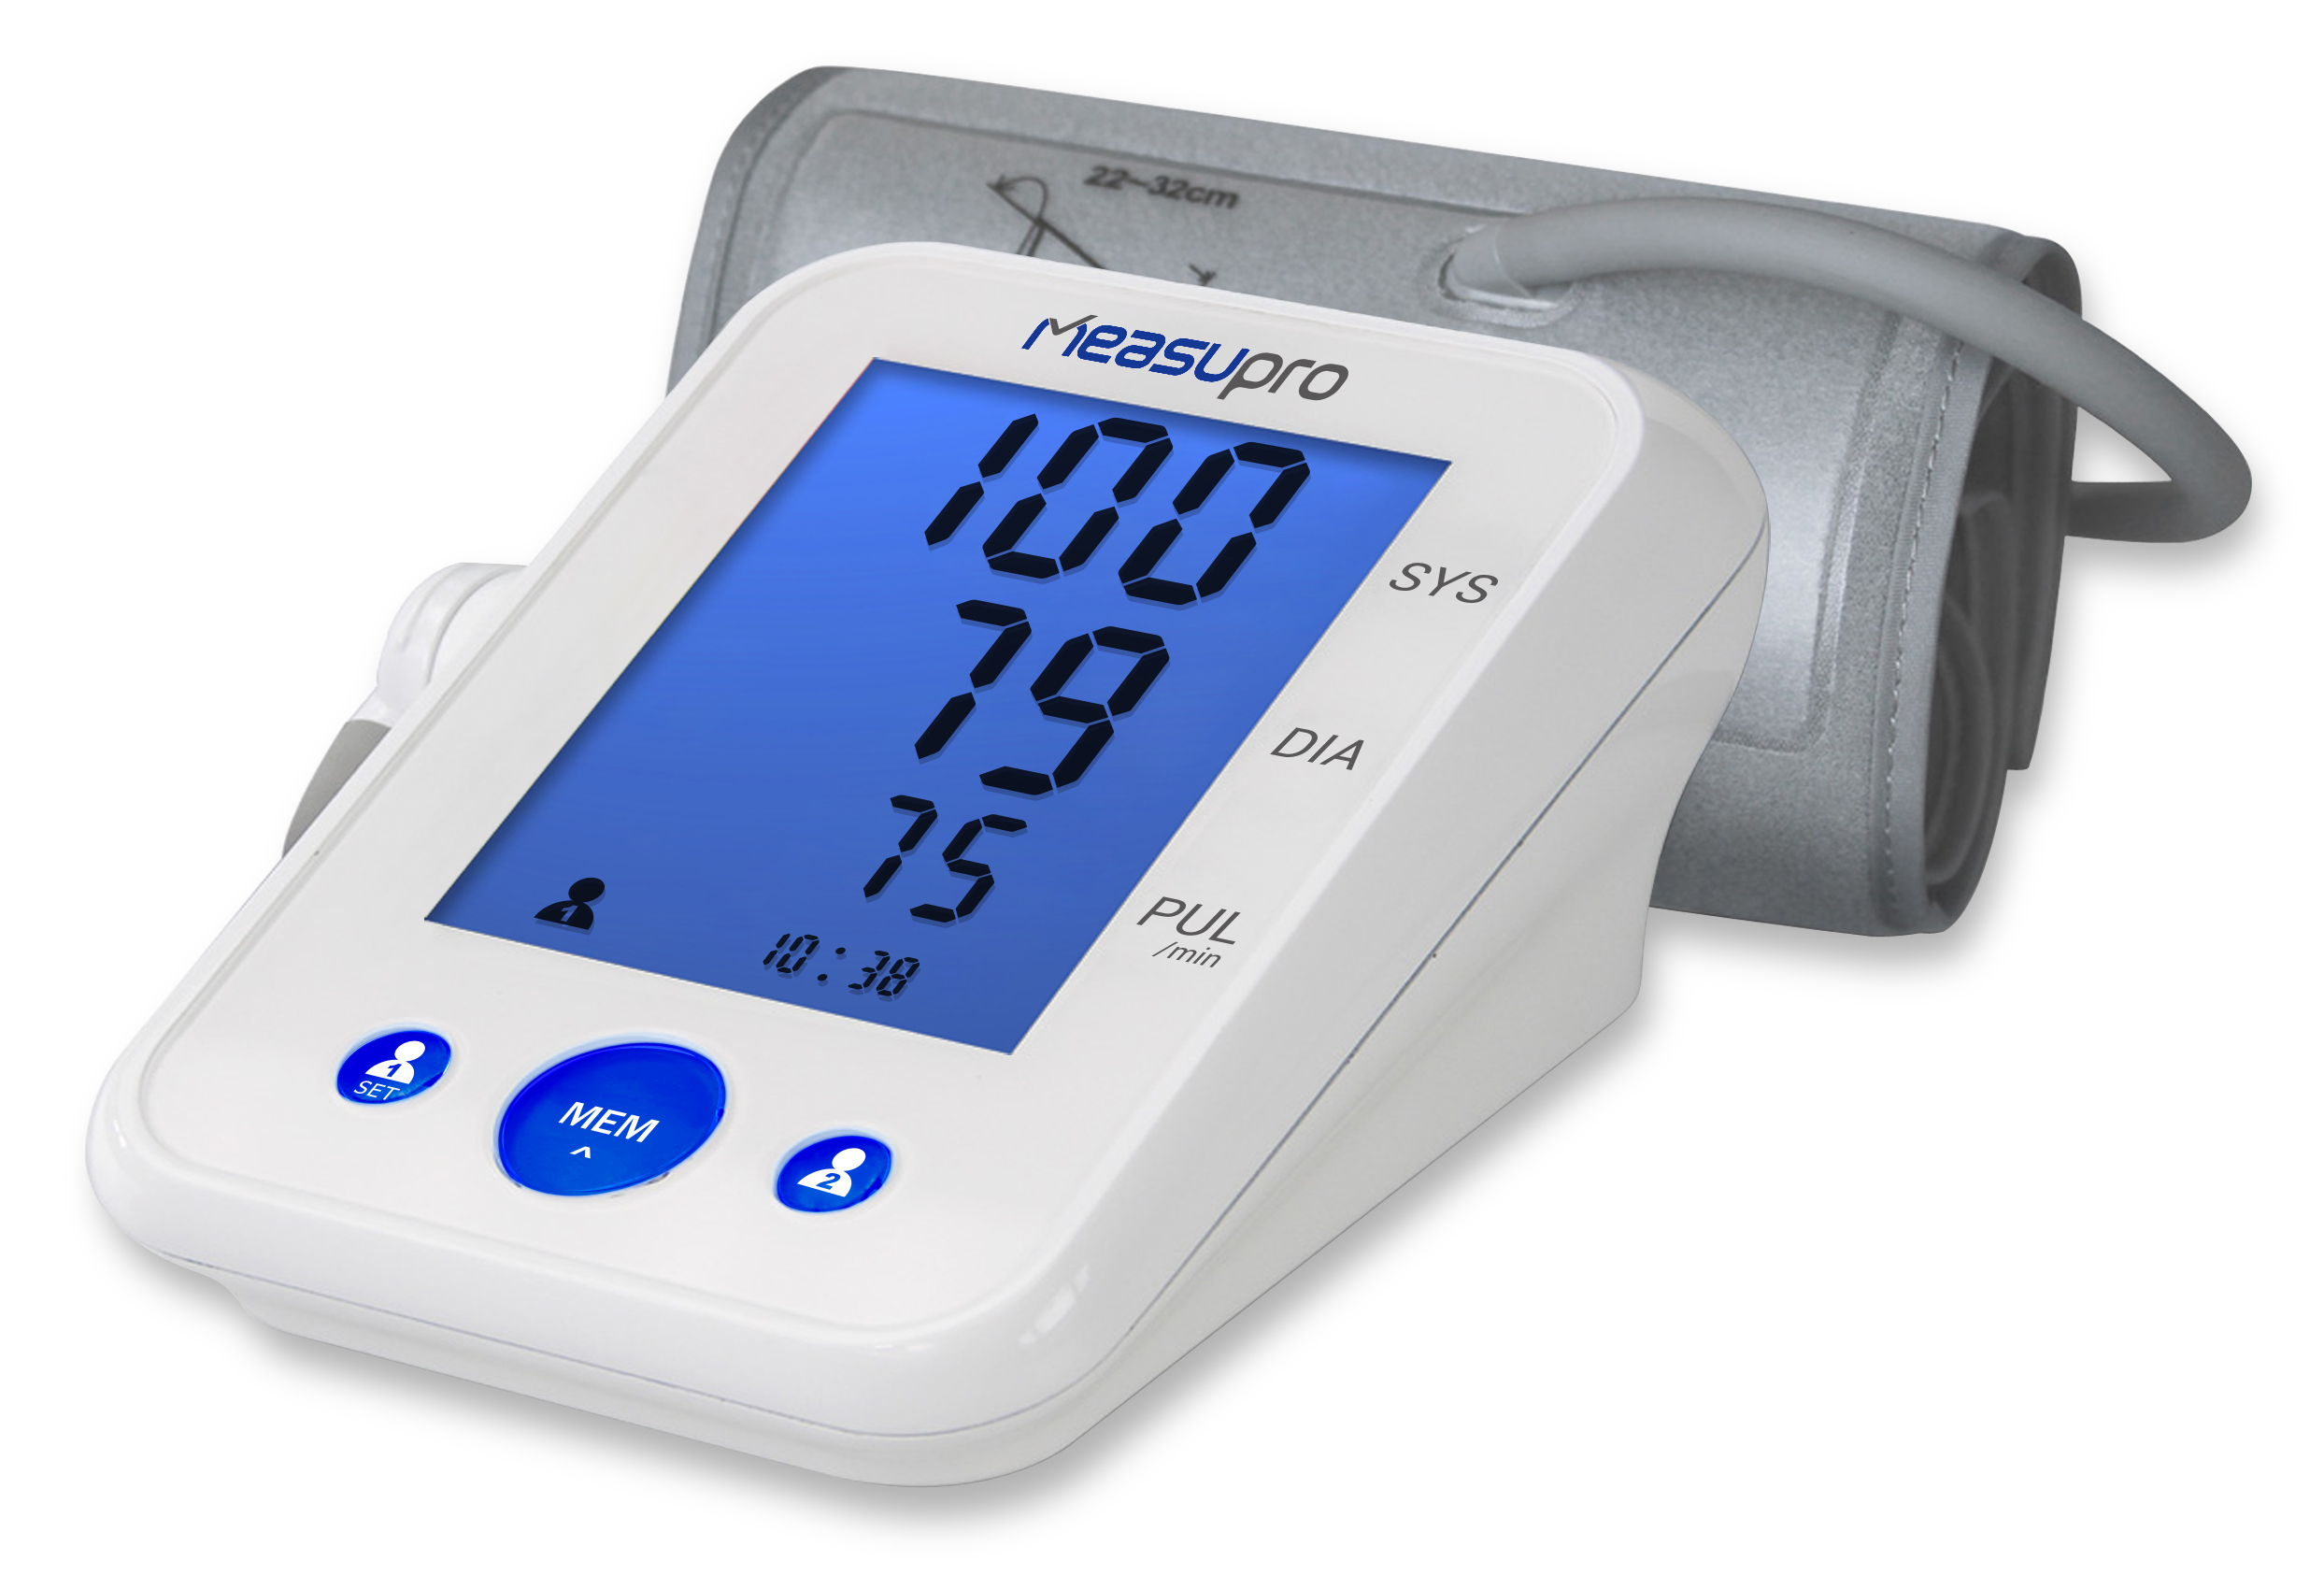 ultrasonic blood pressure how to read